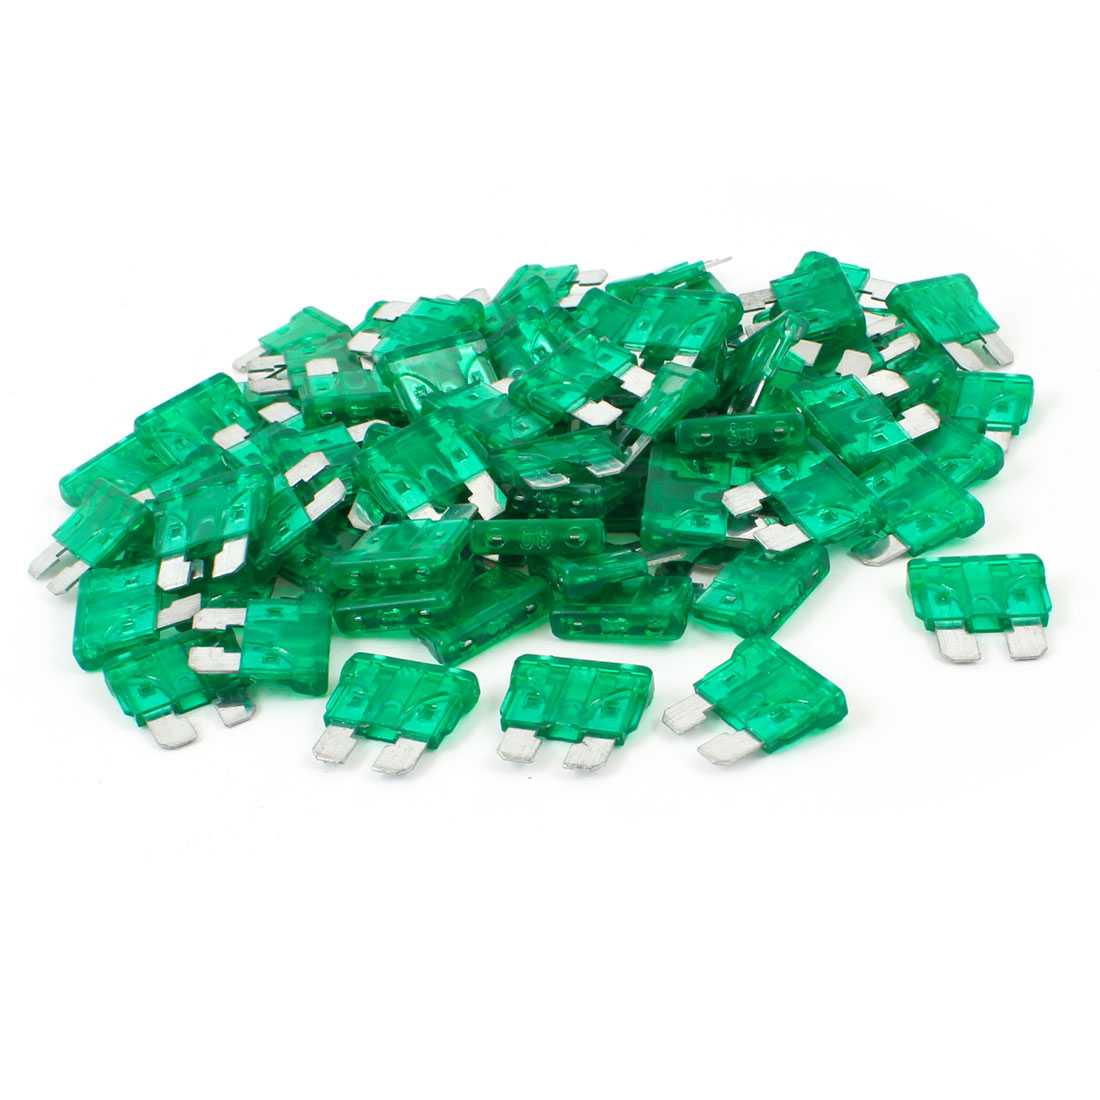 Vehicle Car 30A 30Amp Green Body Two Prong Blade ATC Fuse 100pcs